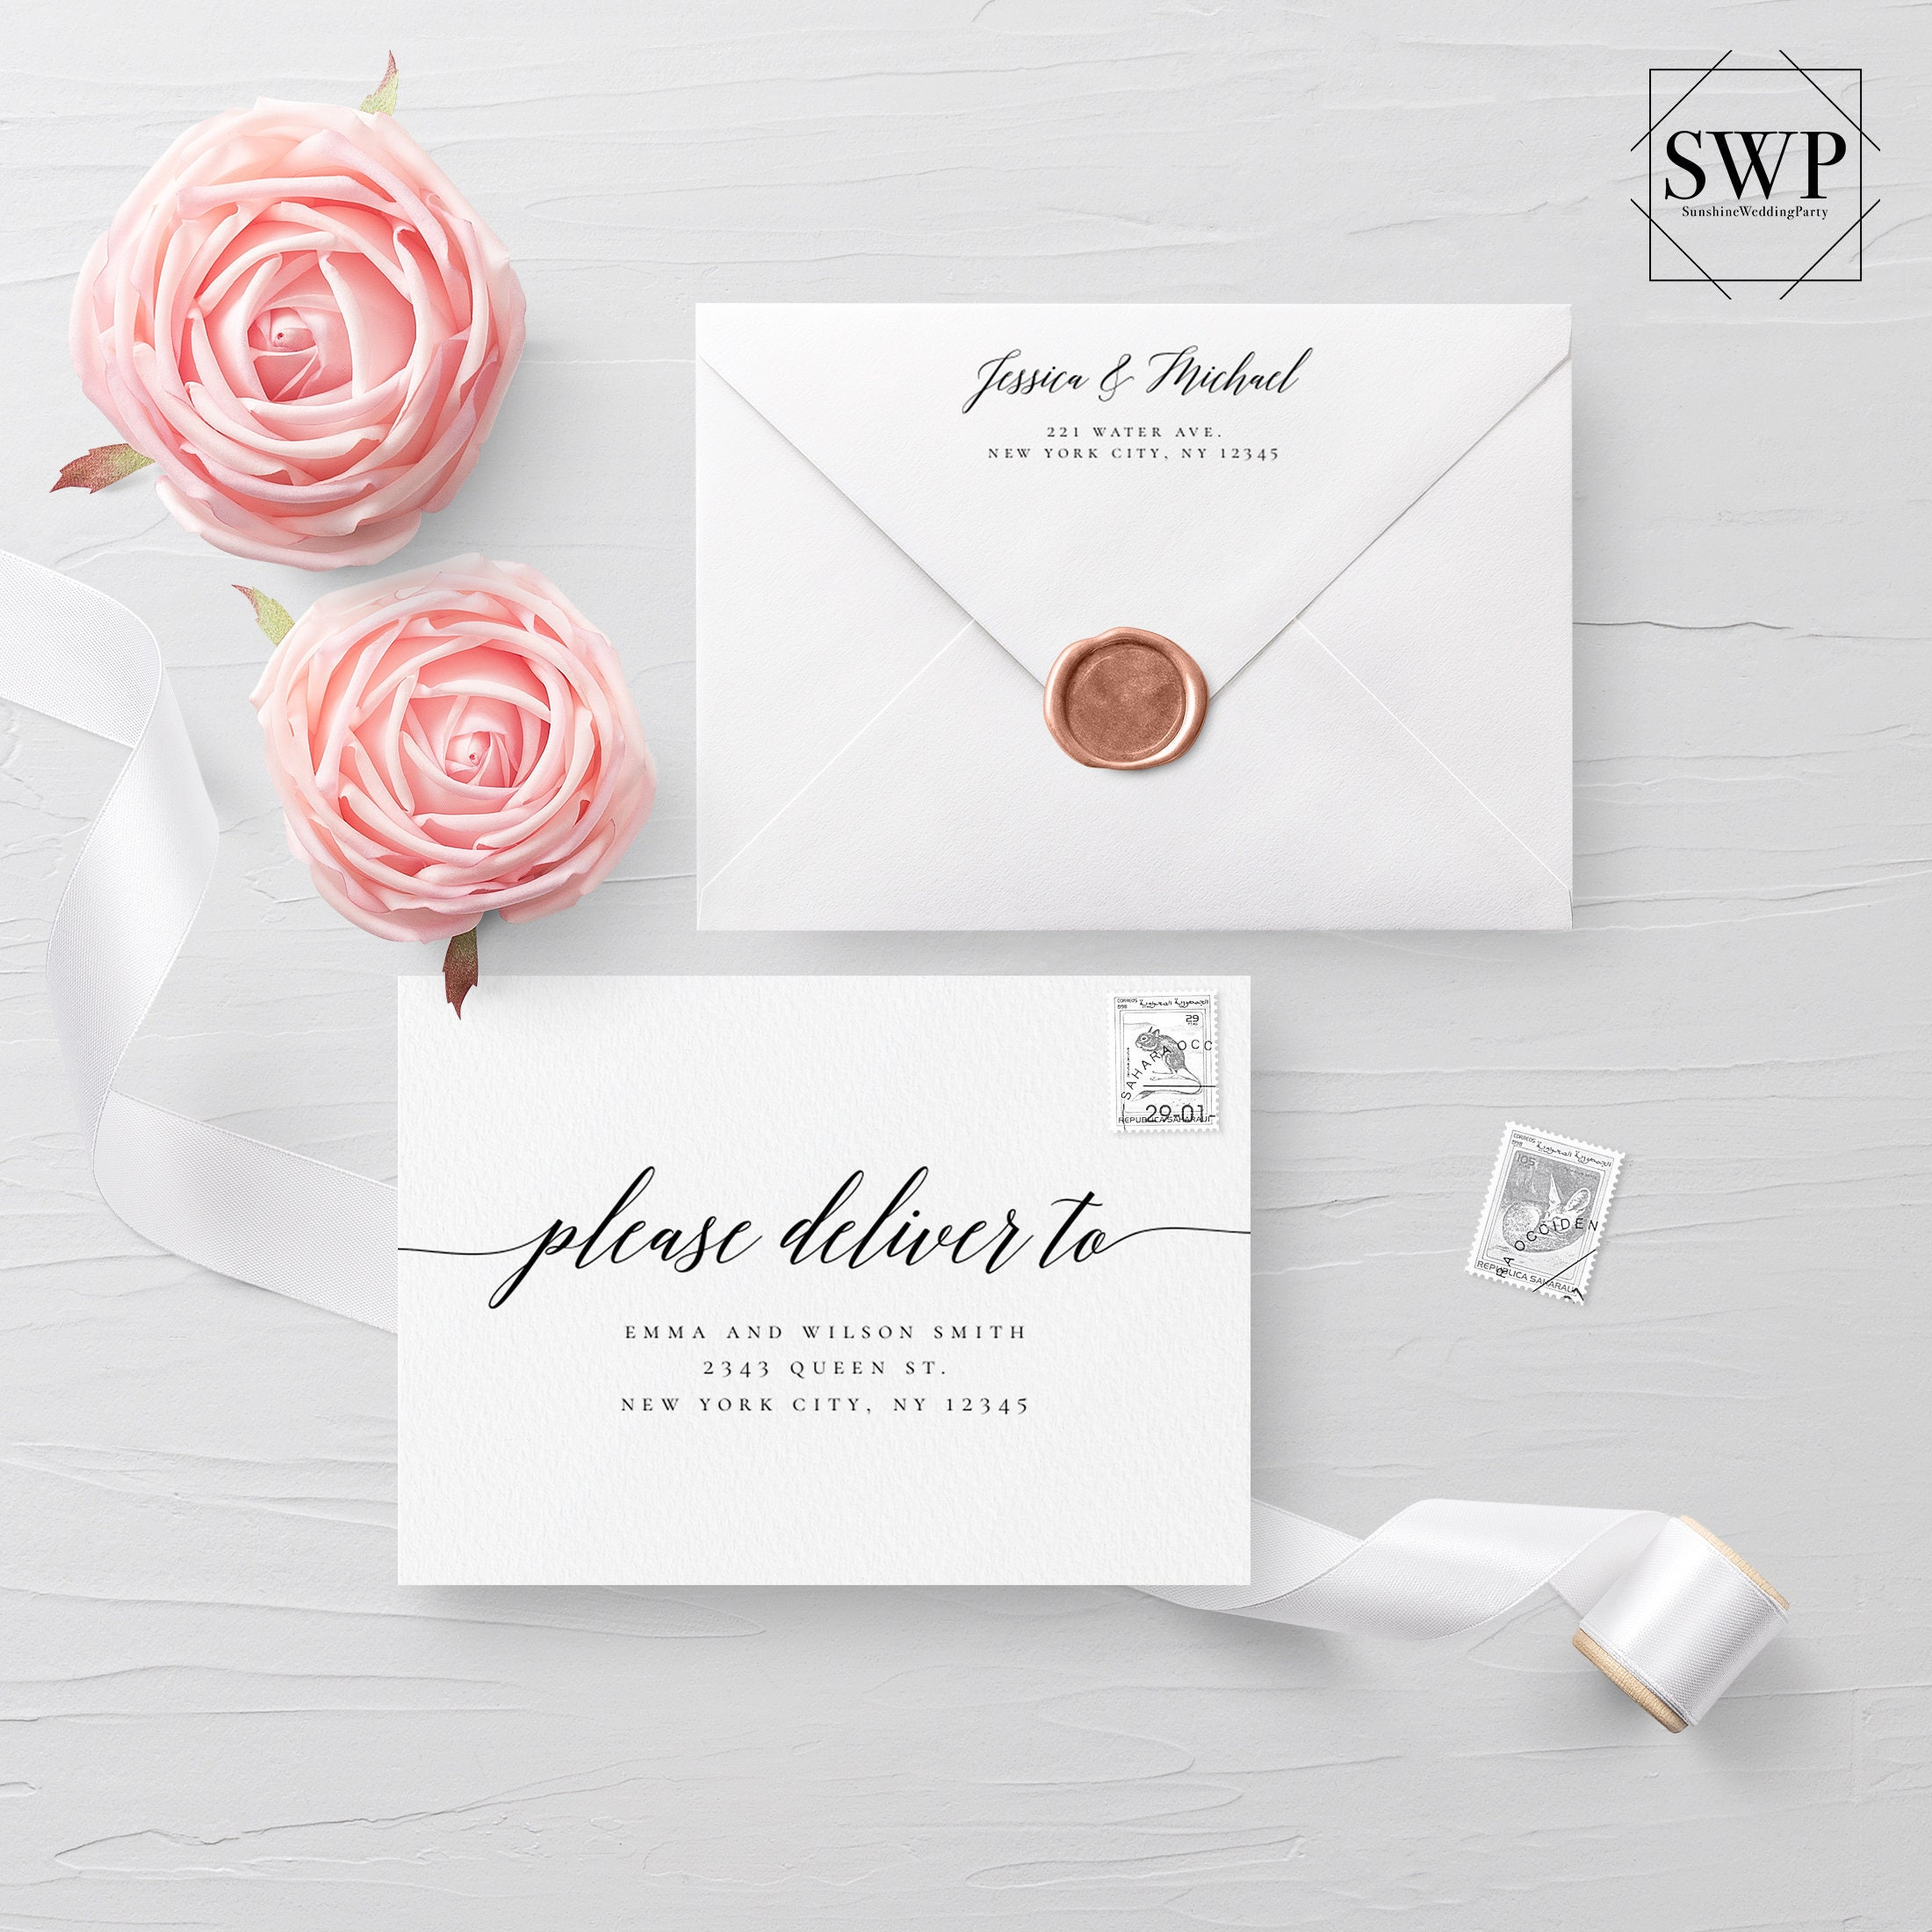 A6 Envelope Template from i.etsystatic.com